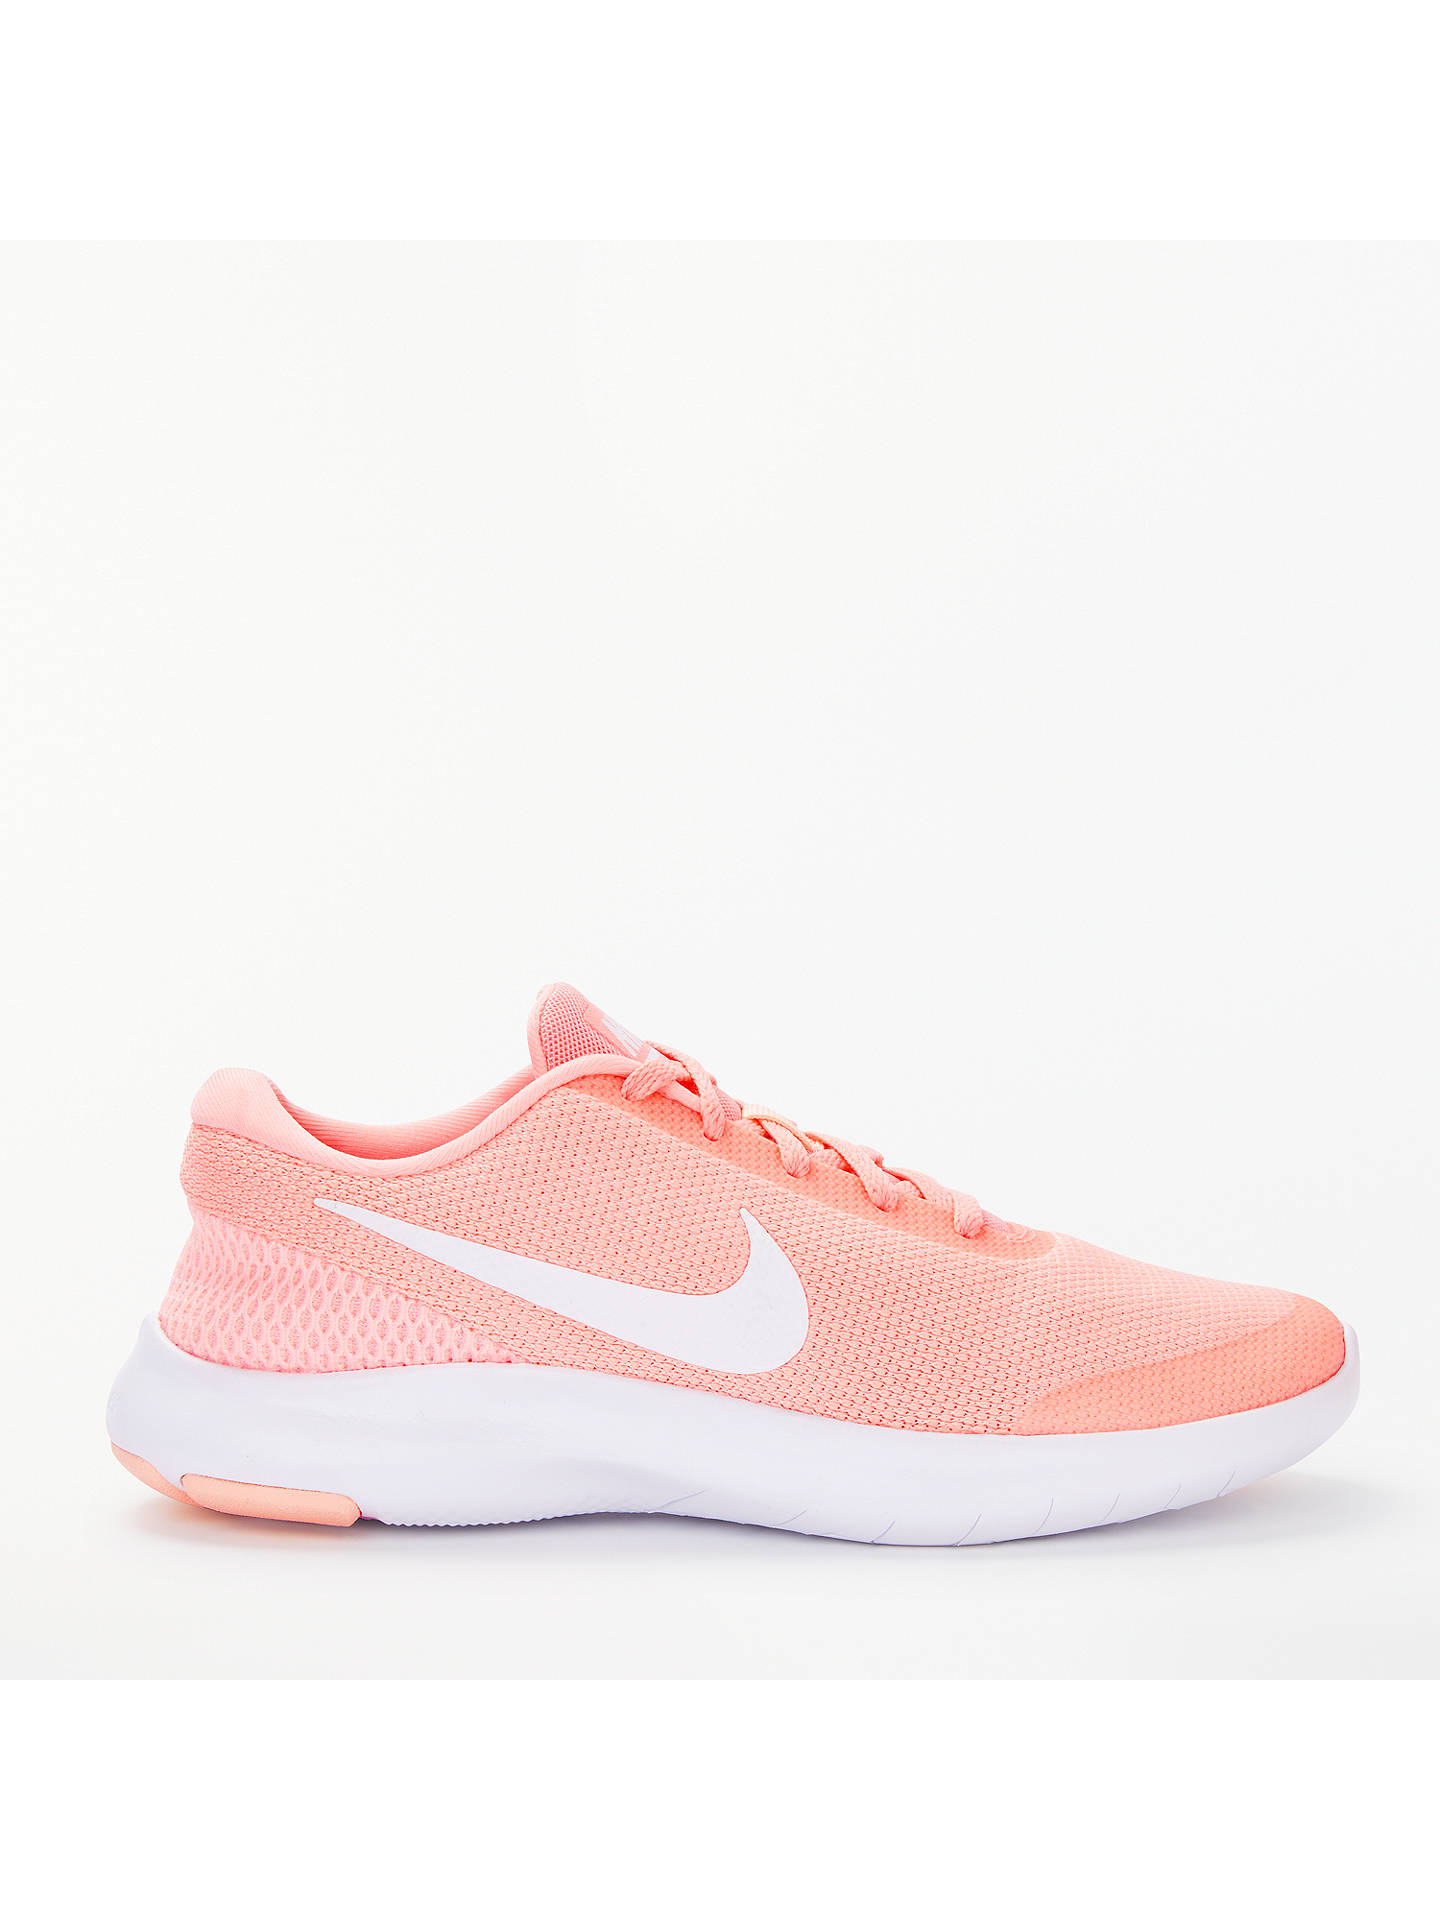 d24af4c5ff57 Buy Nike Flex Experience RN 7 Women s Running Shoes